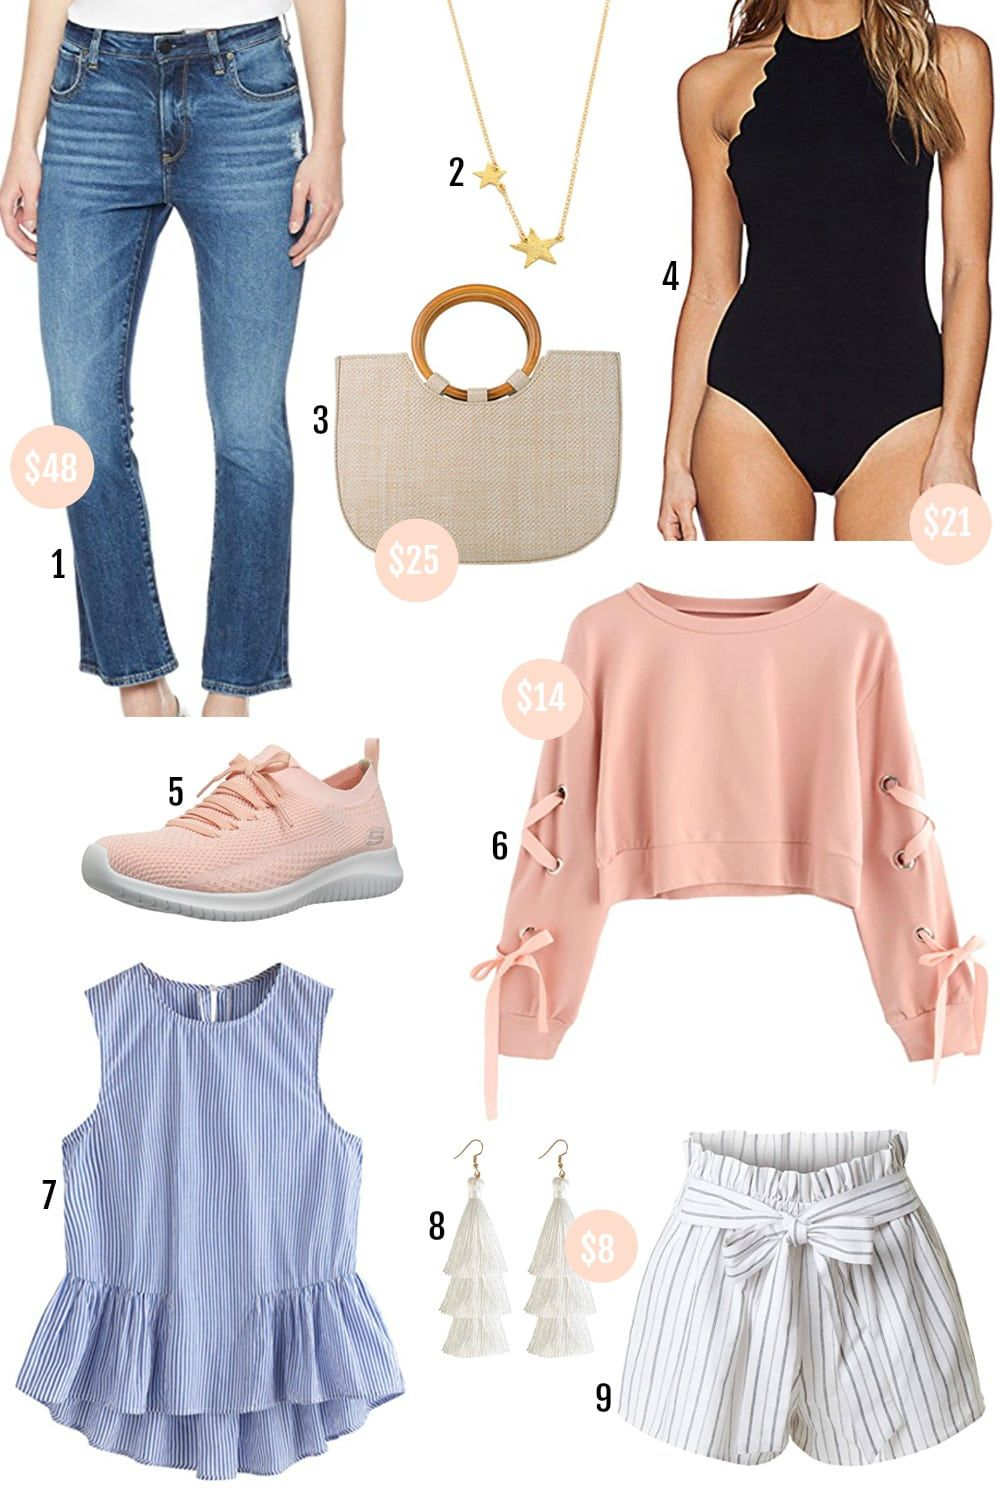 8feece05f897 Beauty blogger Mash Elle shares her roundup of affordable spring fashion  finds